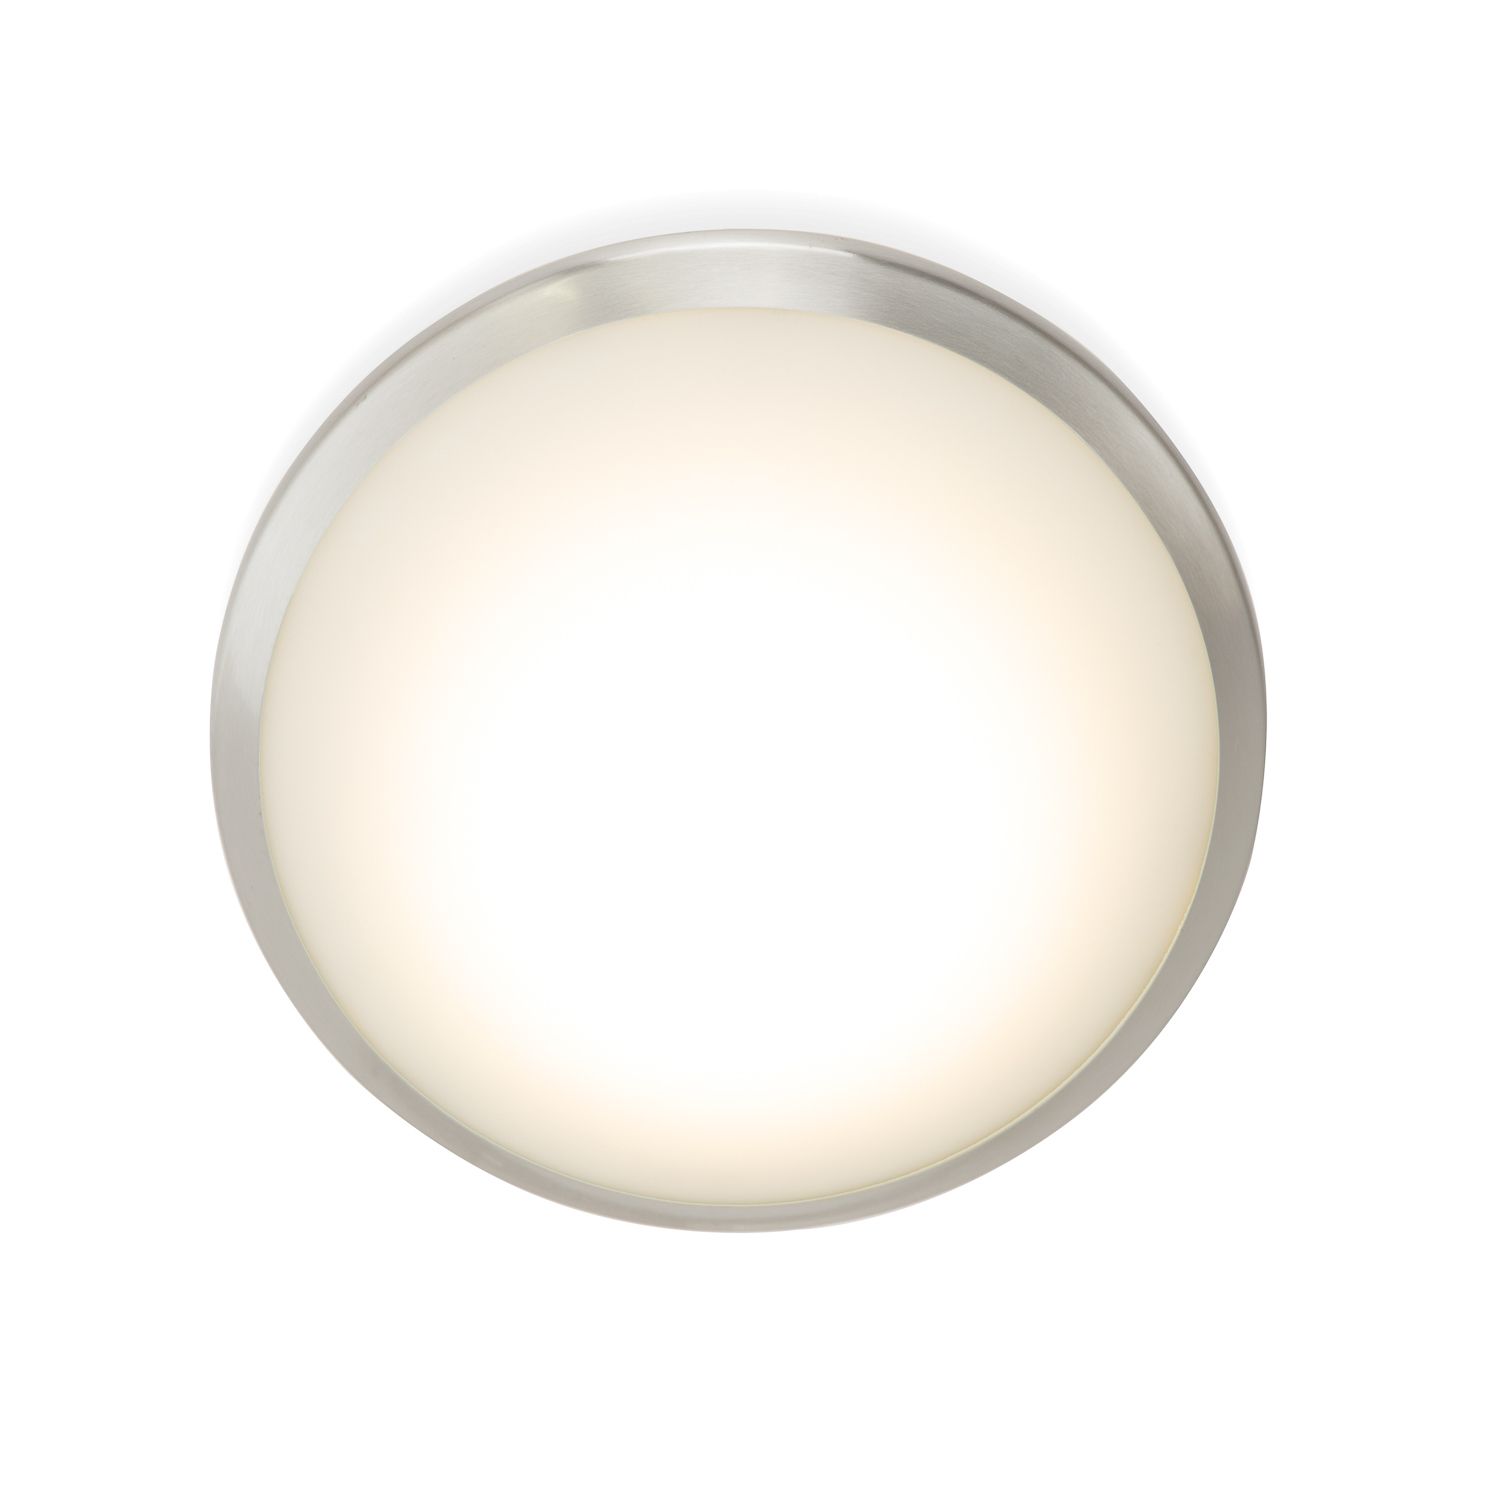 Lightscom ceiling lights flush mount lighting halo for Small flush mount lights